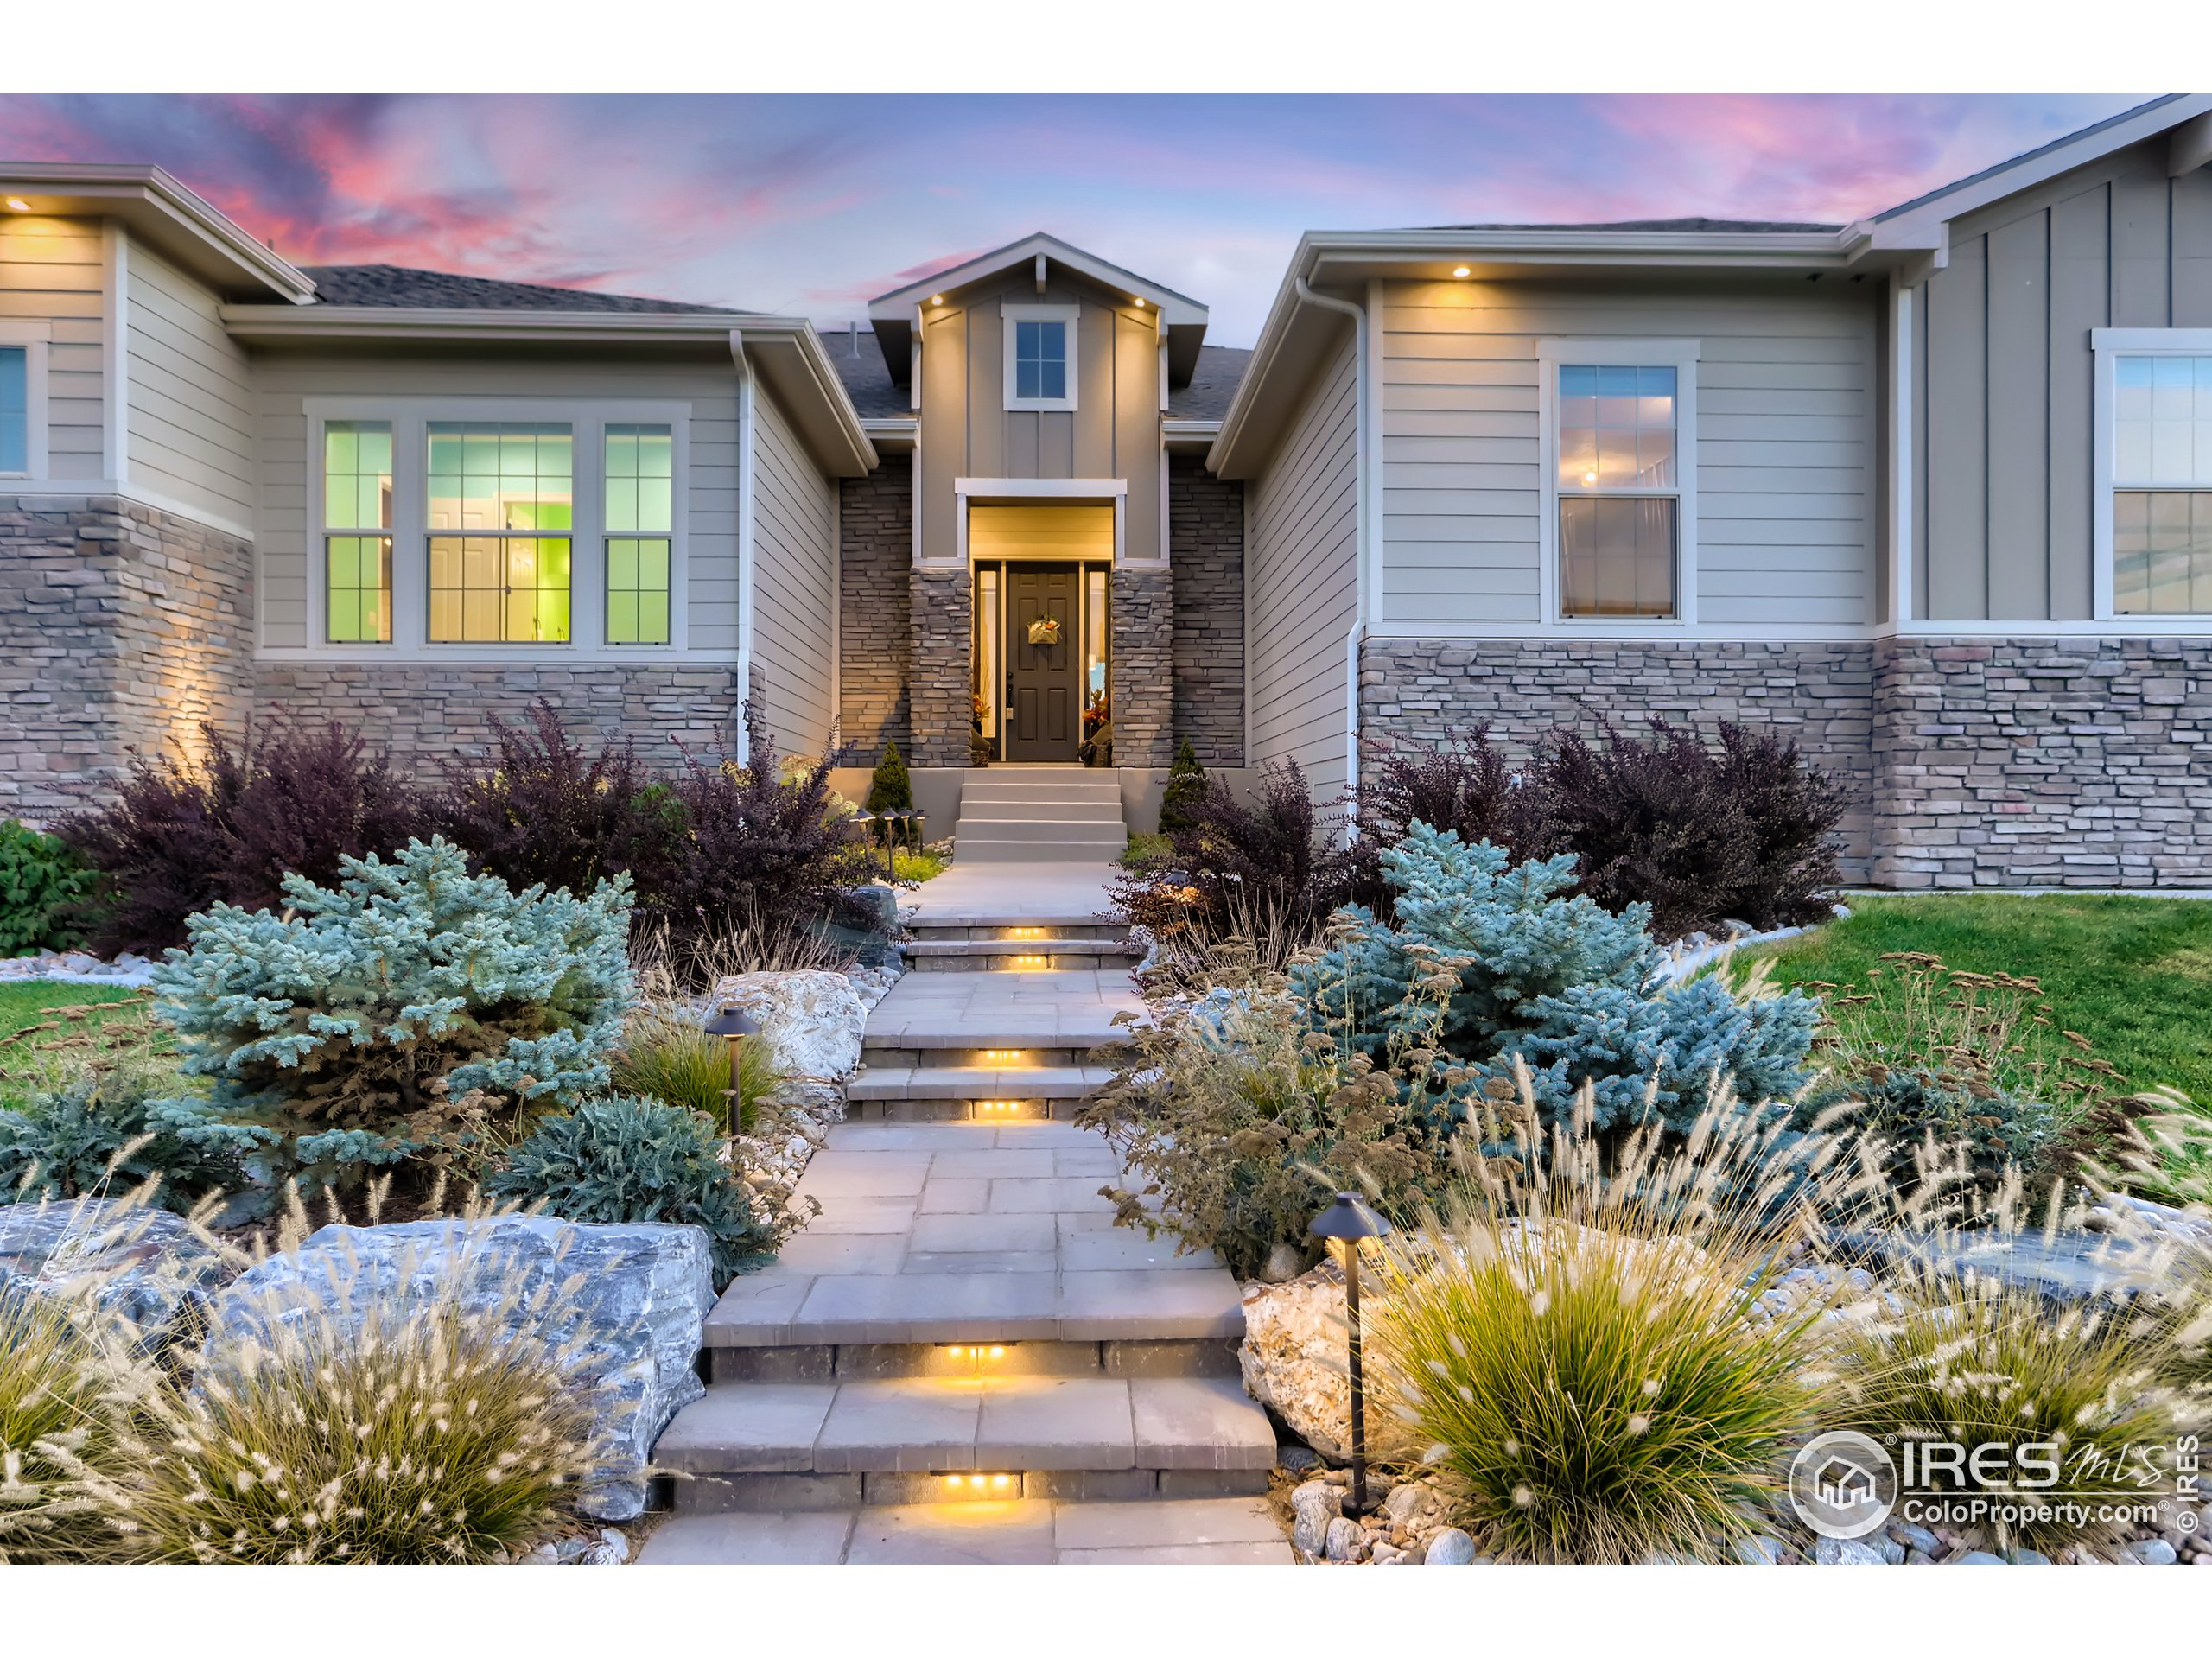 Exquisite Premier Location with Wonderful Unobstructed Views of the Front Range, the Wildlife Protected Fossil Creek Reservoir, and Longs Peak in the Desirable Estates at Kechter Farm. Pleasant Open Floor Plan with Soaring 12' Ceilings, Oversized Windows for Wonderful Natural Light, and Spectacular Views. Spacious Upgraded Kitchen with an Enormous Island, SS Appliances, Quartz Counters & Walk-In Pantry. Grand Primary Bedroom Suite, 5 Piece Bath & Awesome Walk-In Closet w/Built-In Organizer. Two Secondary (En-Suite) Bedrooms. Expansive Study/Family Area, or Possible 4th Bedroom. Wide Plank Wood Floors in the Main Living Areas. Full Unfinished Walkout Basement, w/Engineered Structural Slab Floor for Your Peace of Mind, Ready for Your Finishing Touches. The Expansive .45 Acre (19,611 Sq. Ft.) Lot has Room for You to Enjoy and Play. Many Thoughtful Initial Upgrades of $680K Throughout the Property with an Additional $100K in Beautiful Landscaping, Patios & Firepit and Other Finishes